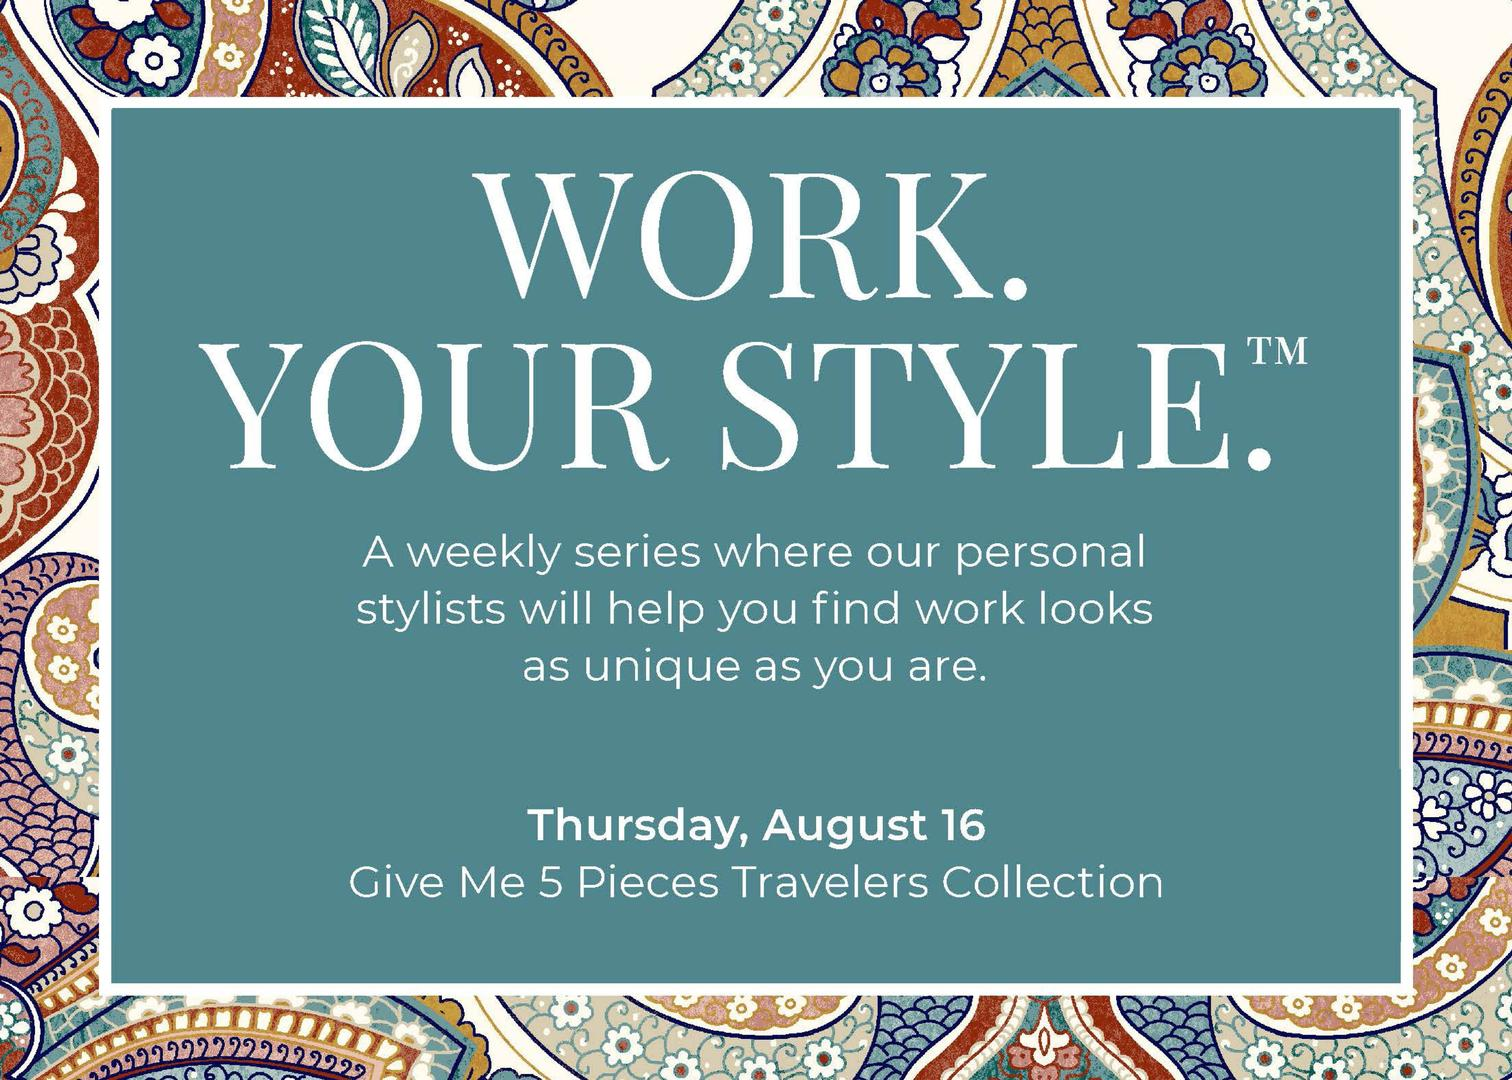 The Oakwood Centre, Work You Style- Give Me 5 Pieces Travelers Collection  Event Image: 2500 Far Hills Ave, Dayton, OH 45419, US